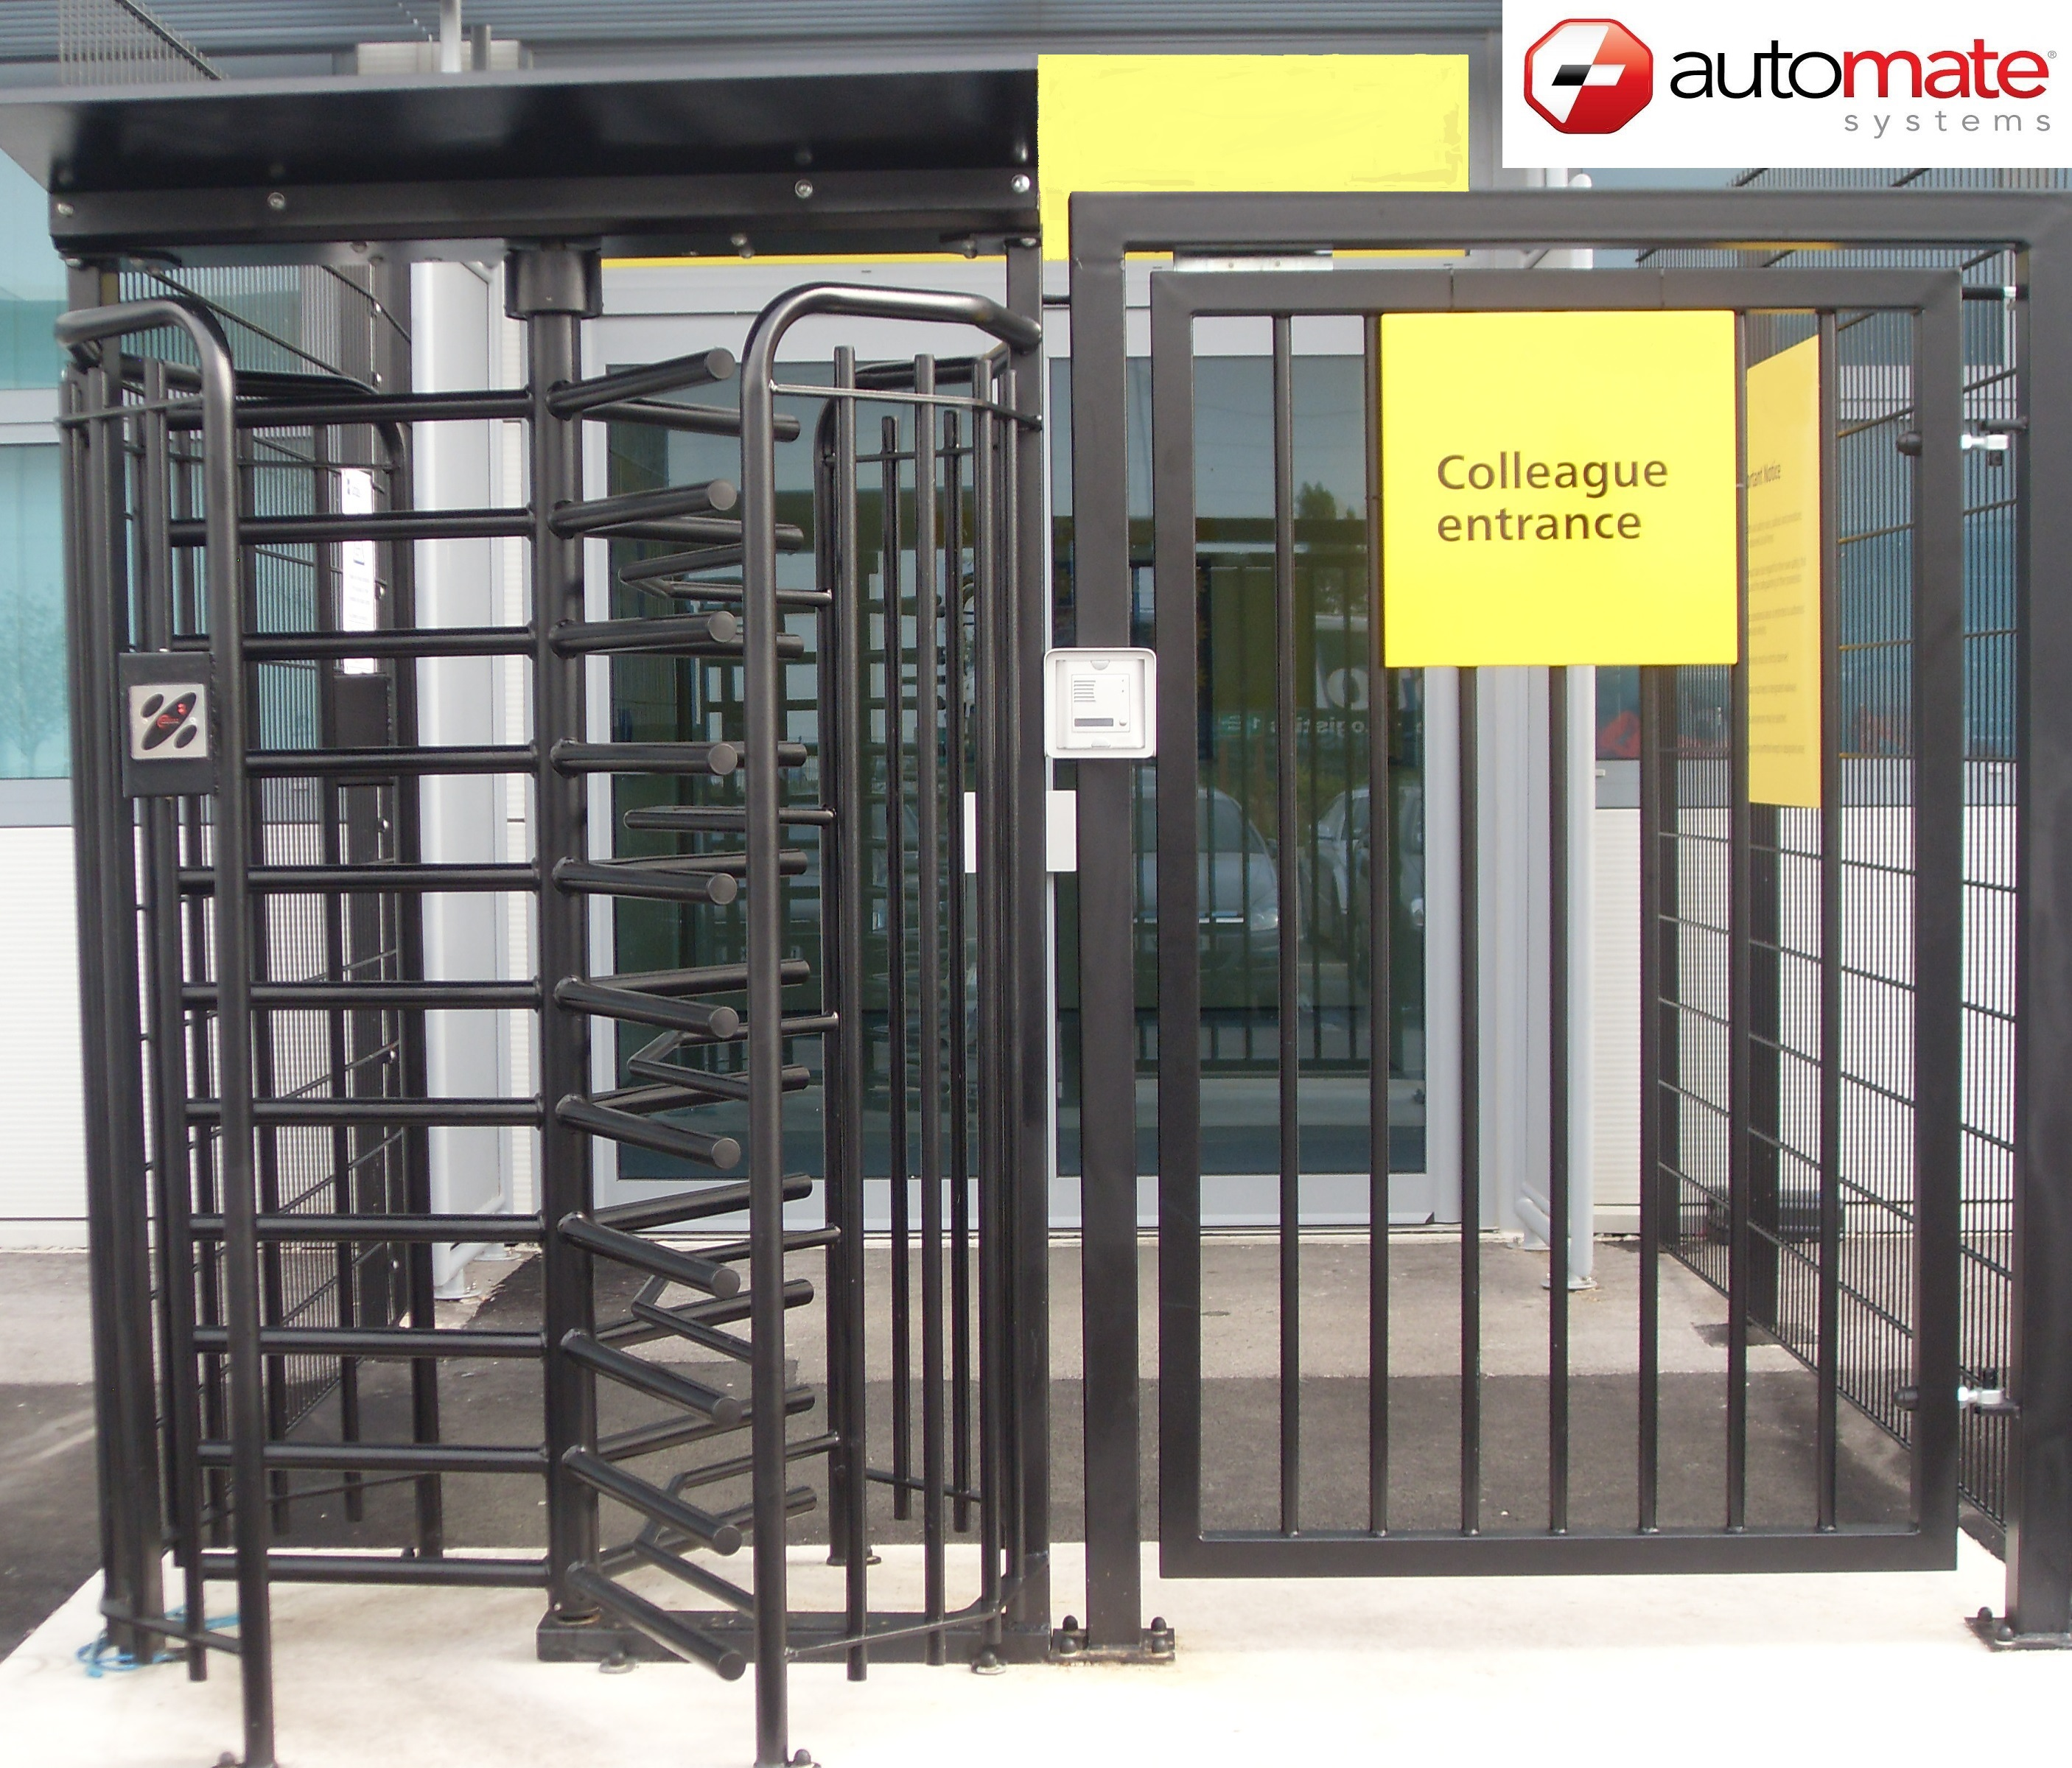 DDA Gate with Full Height Turnstile - Automate Systems